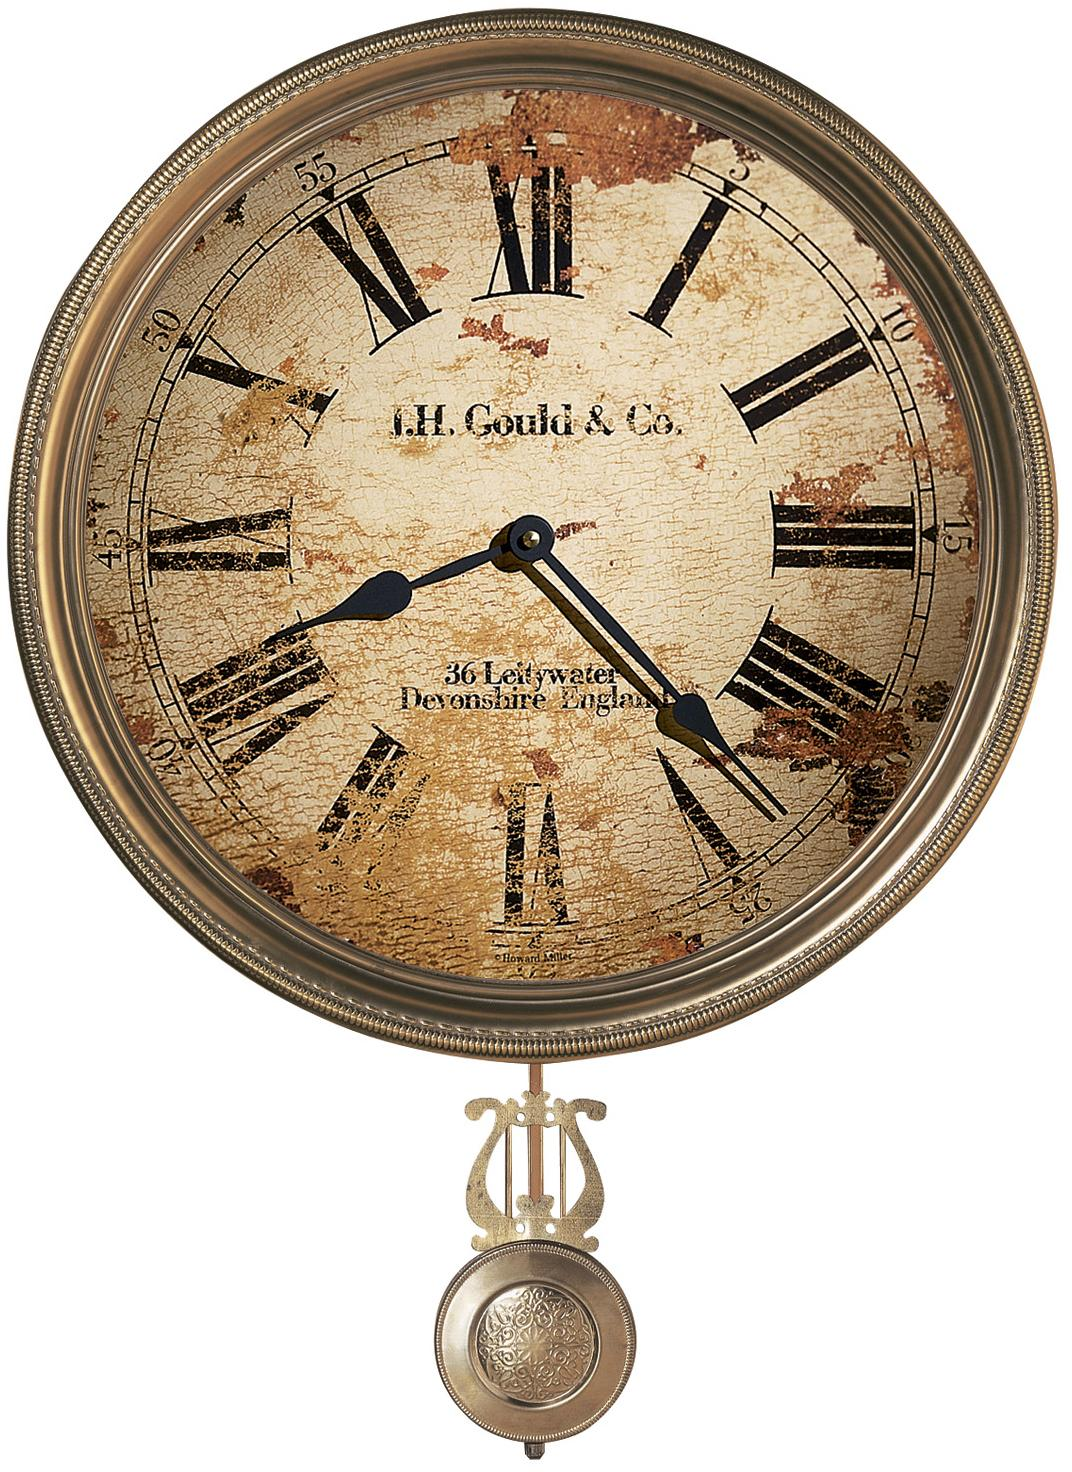 620 J.H. Gould and Co. III  by Howard Miller at VanDrie Home Furnishings